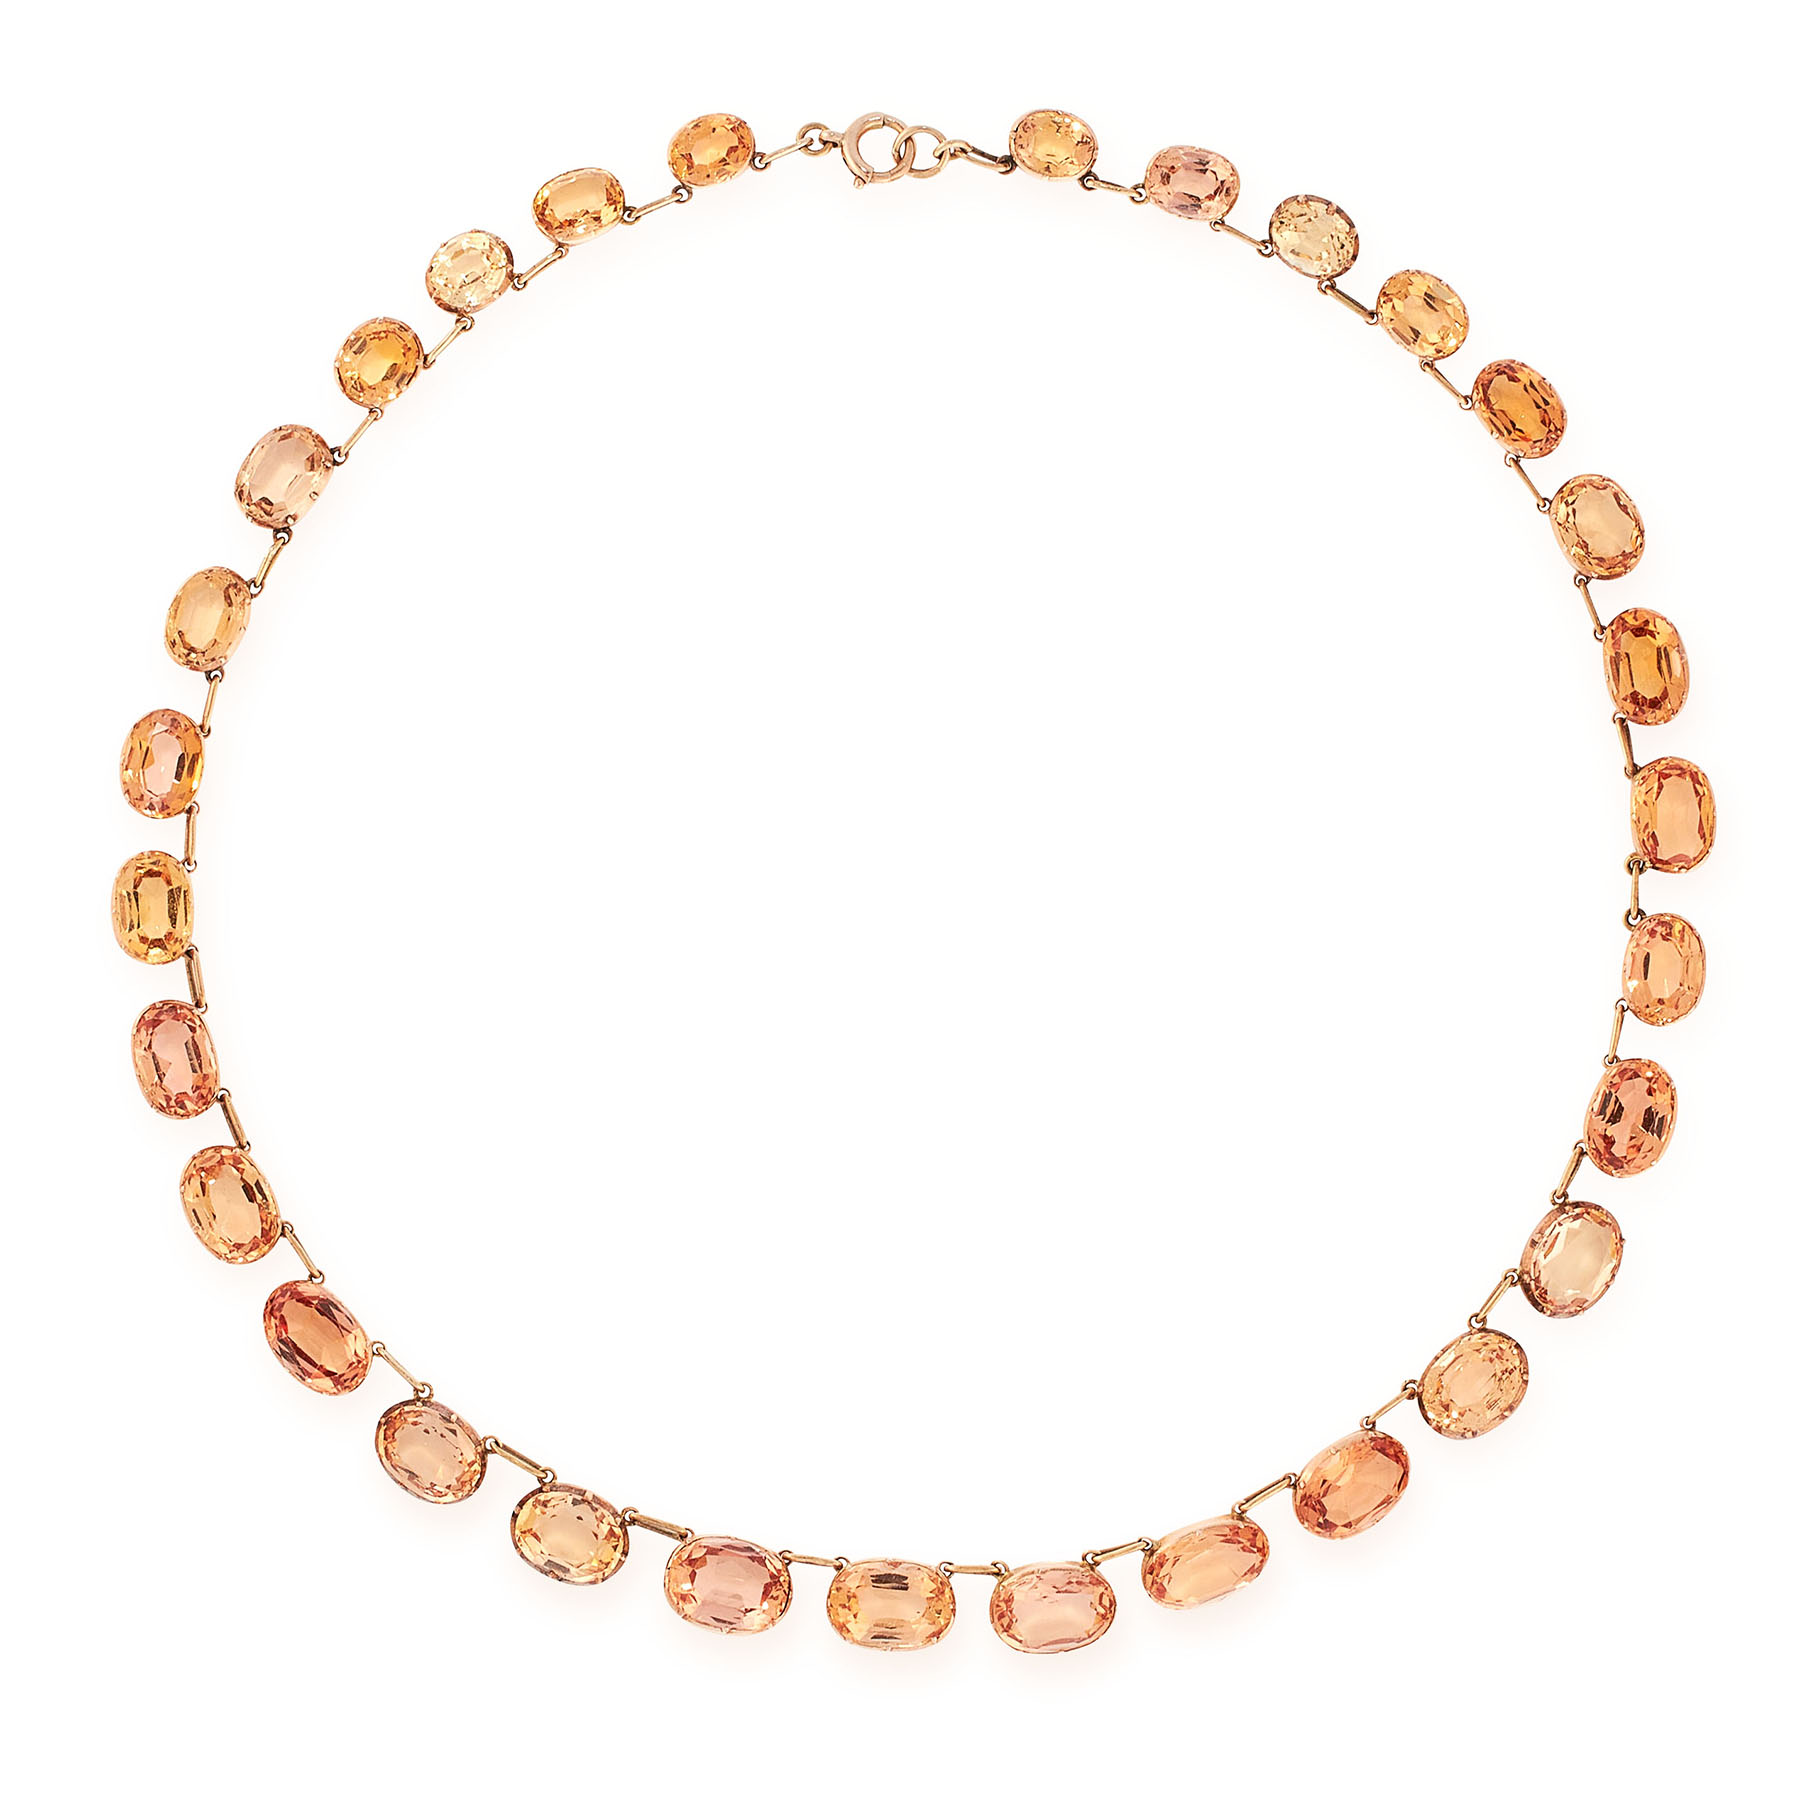 AN ANTIQUE IMPERIAL TOPAZ RIVIERE NECKLACE, 19TH CENTURY in yellow gold, comprising a single row - Image 2 of 2